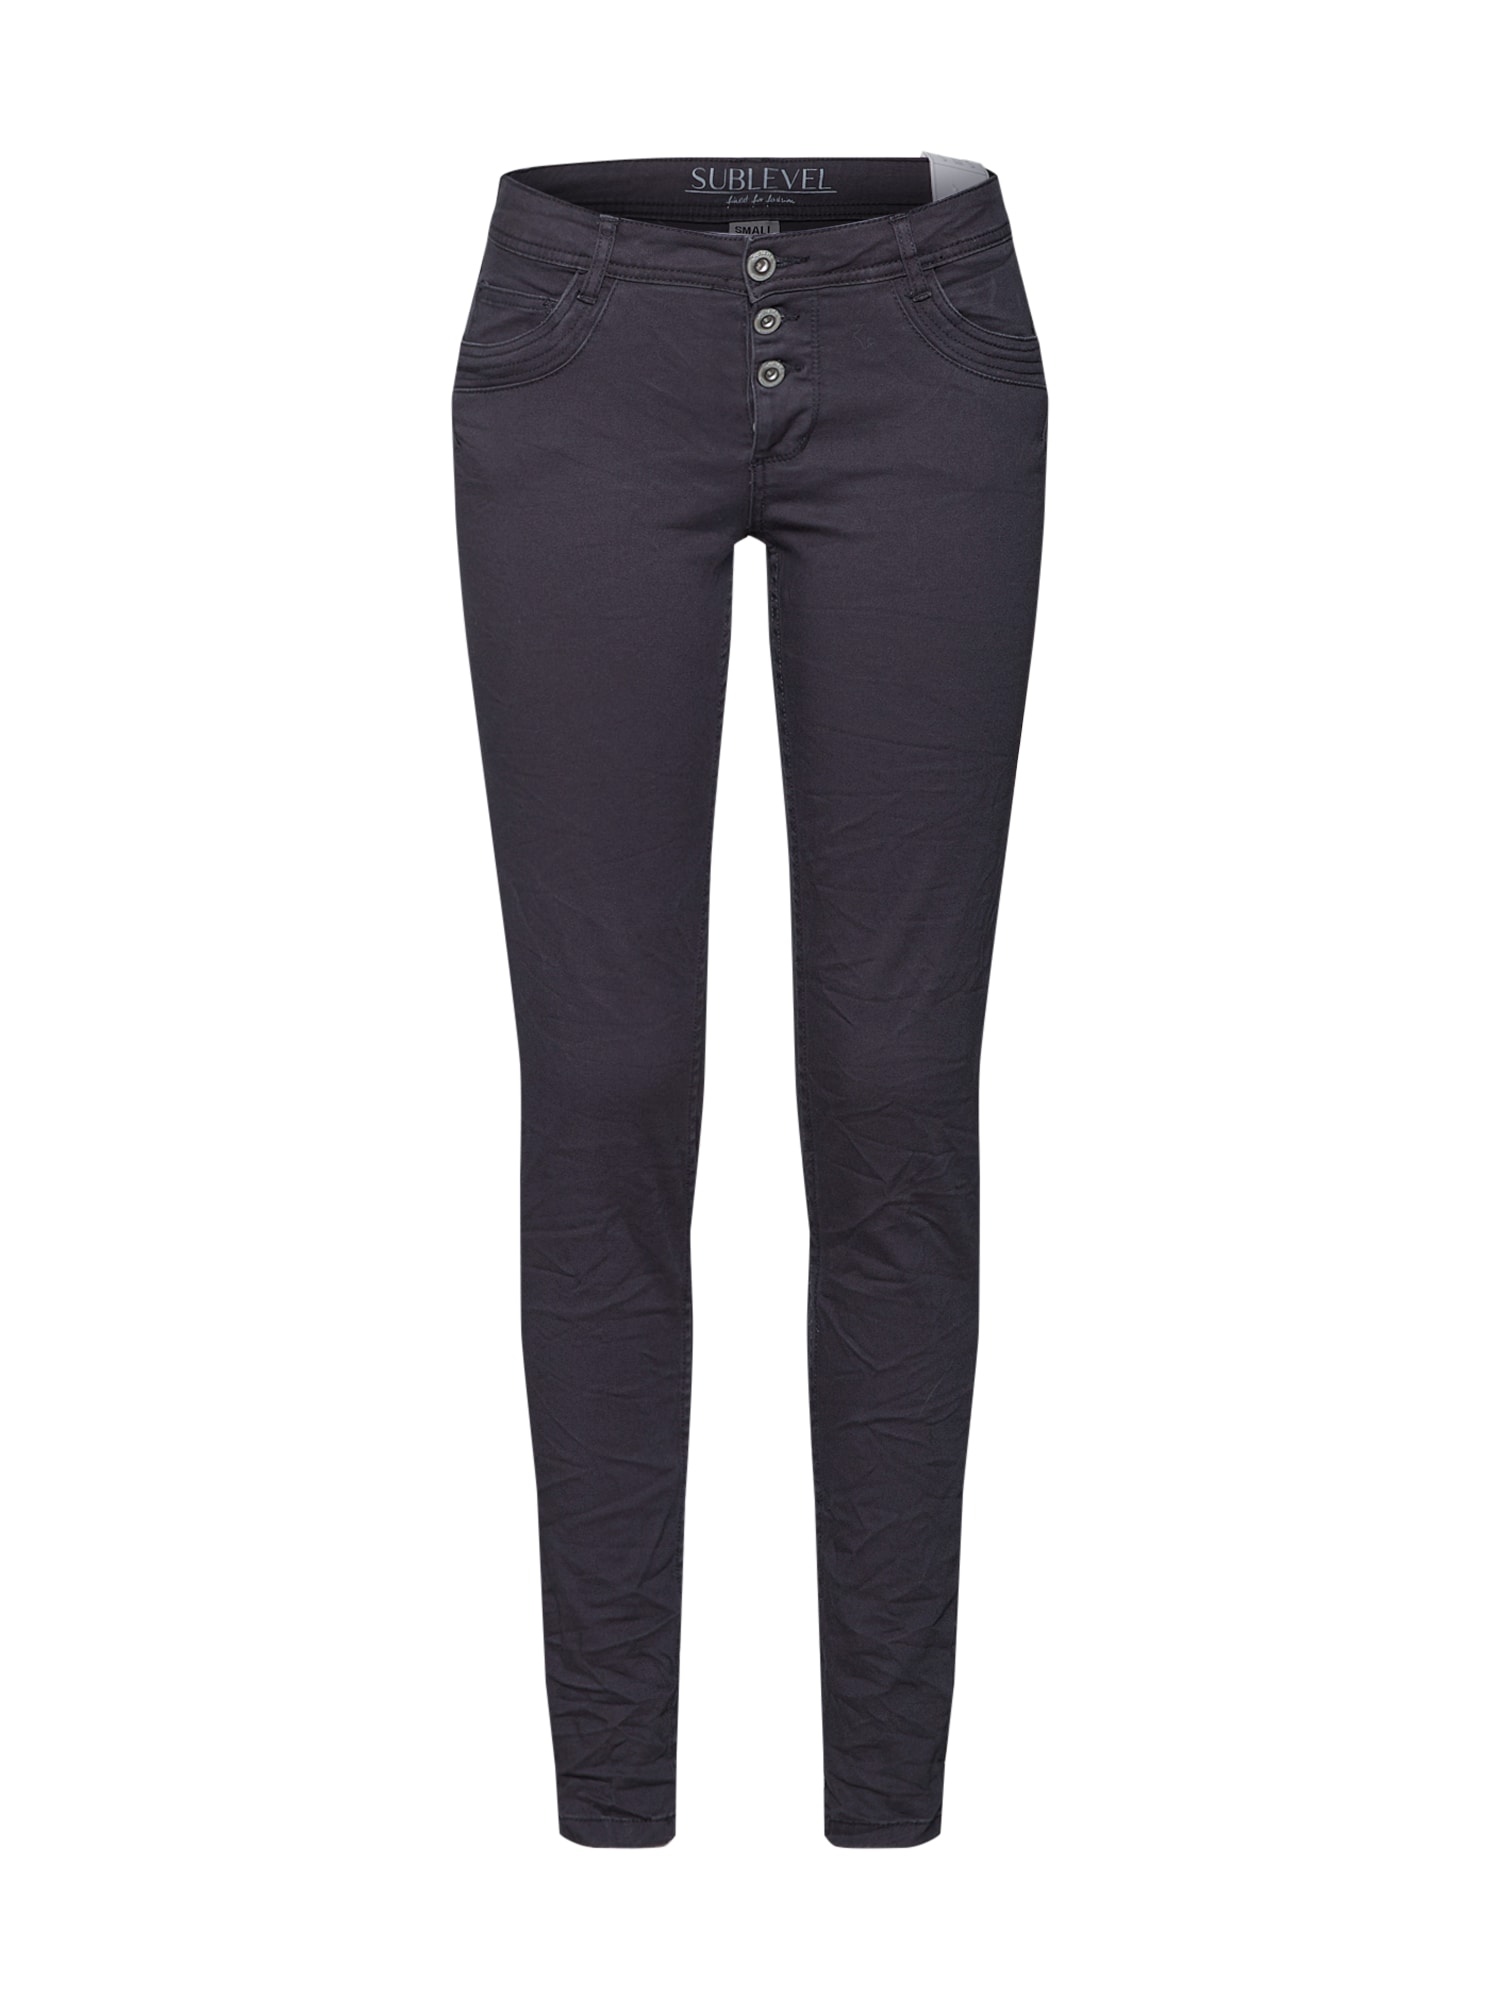 Kalhoty Ladies trousers antracitová Sublevel